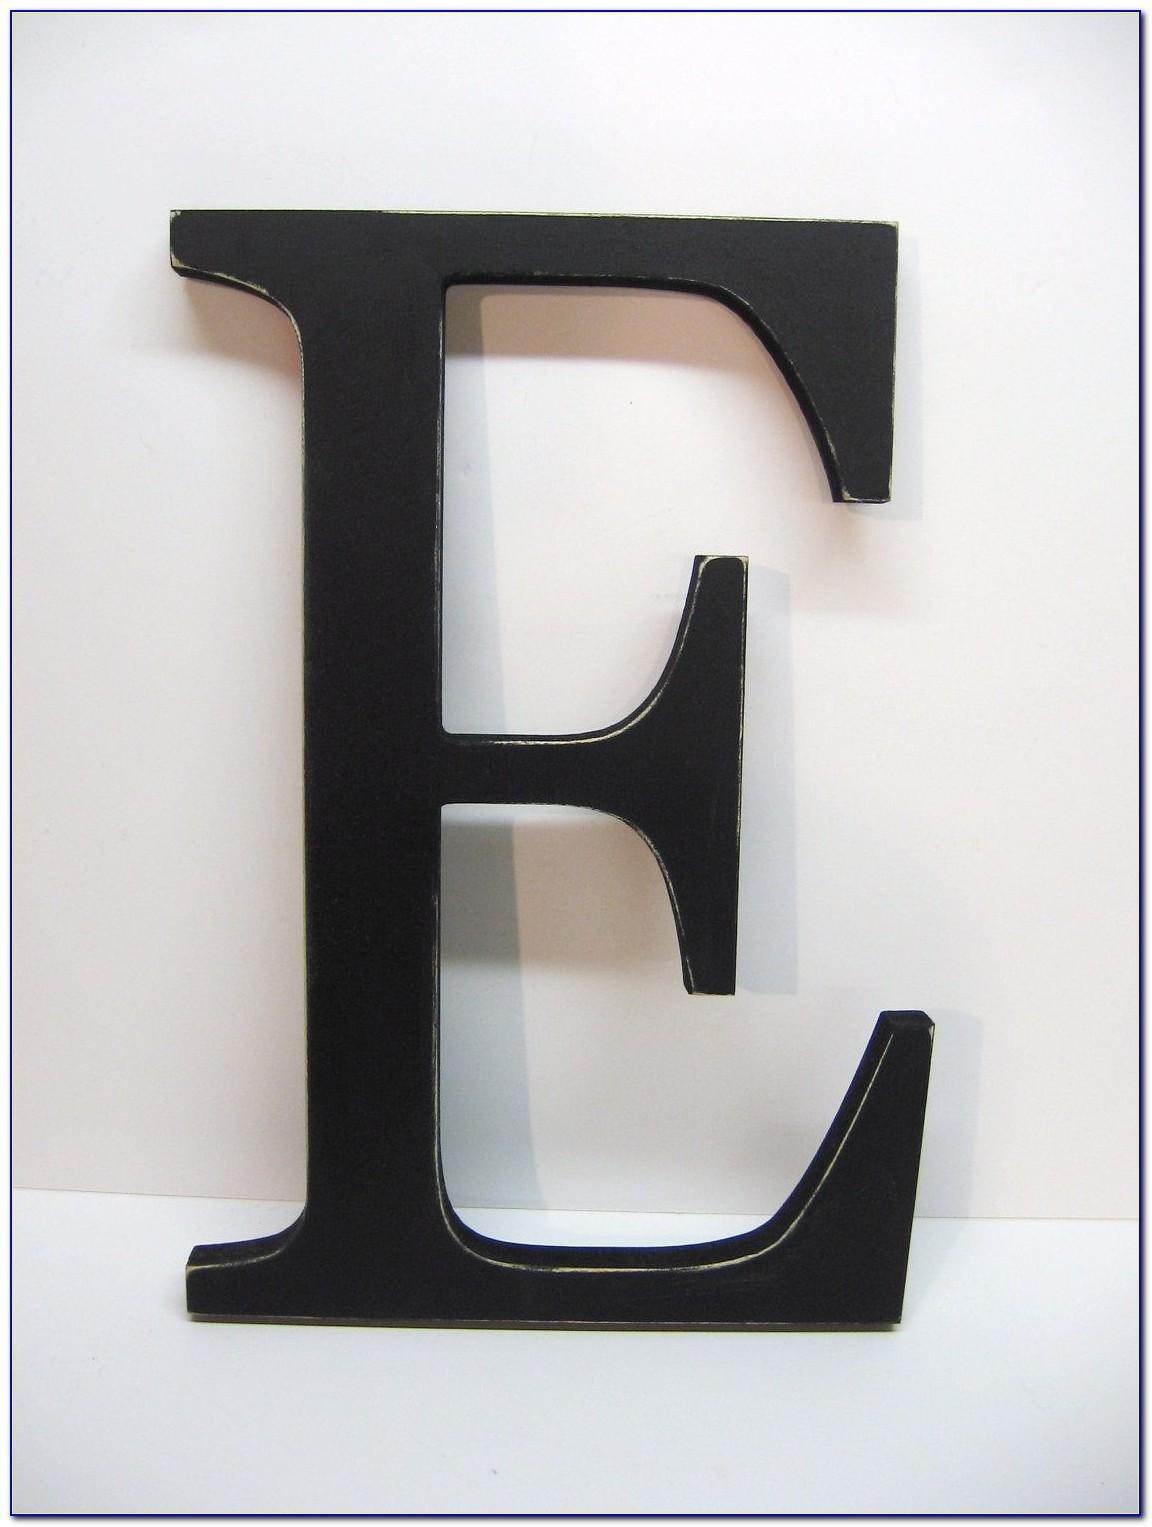 5 Inch Tall Wooden Letters